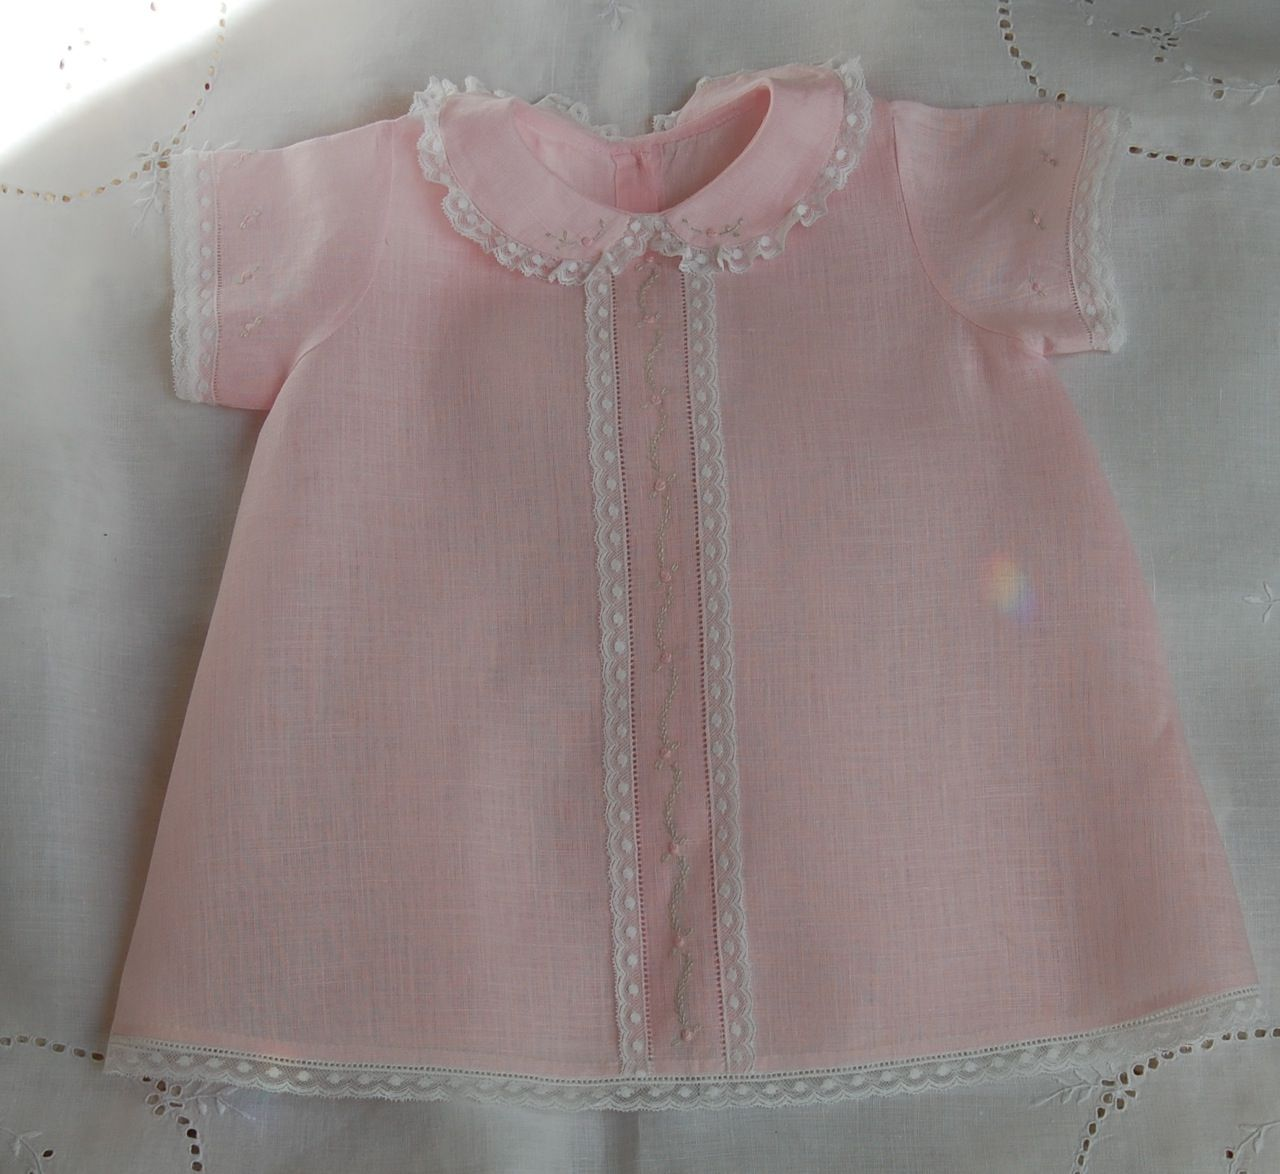 Heirloom Market In Birmingham Embroidered Baby Clothes Clothes Smocked Clothes